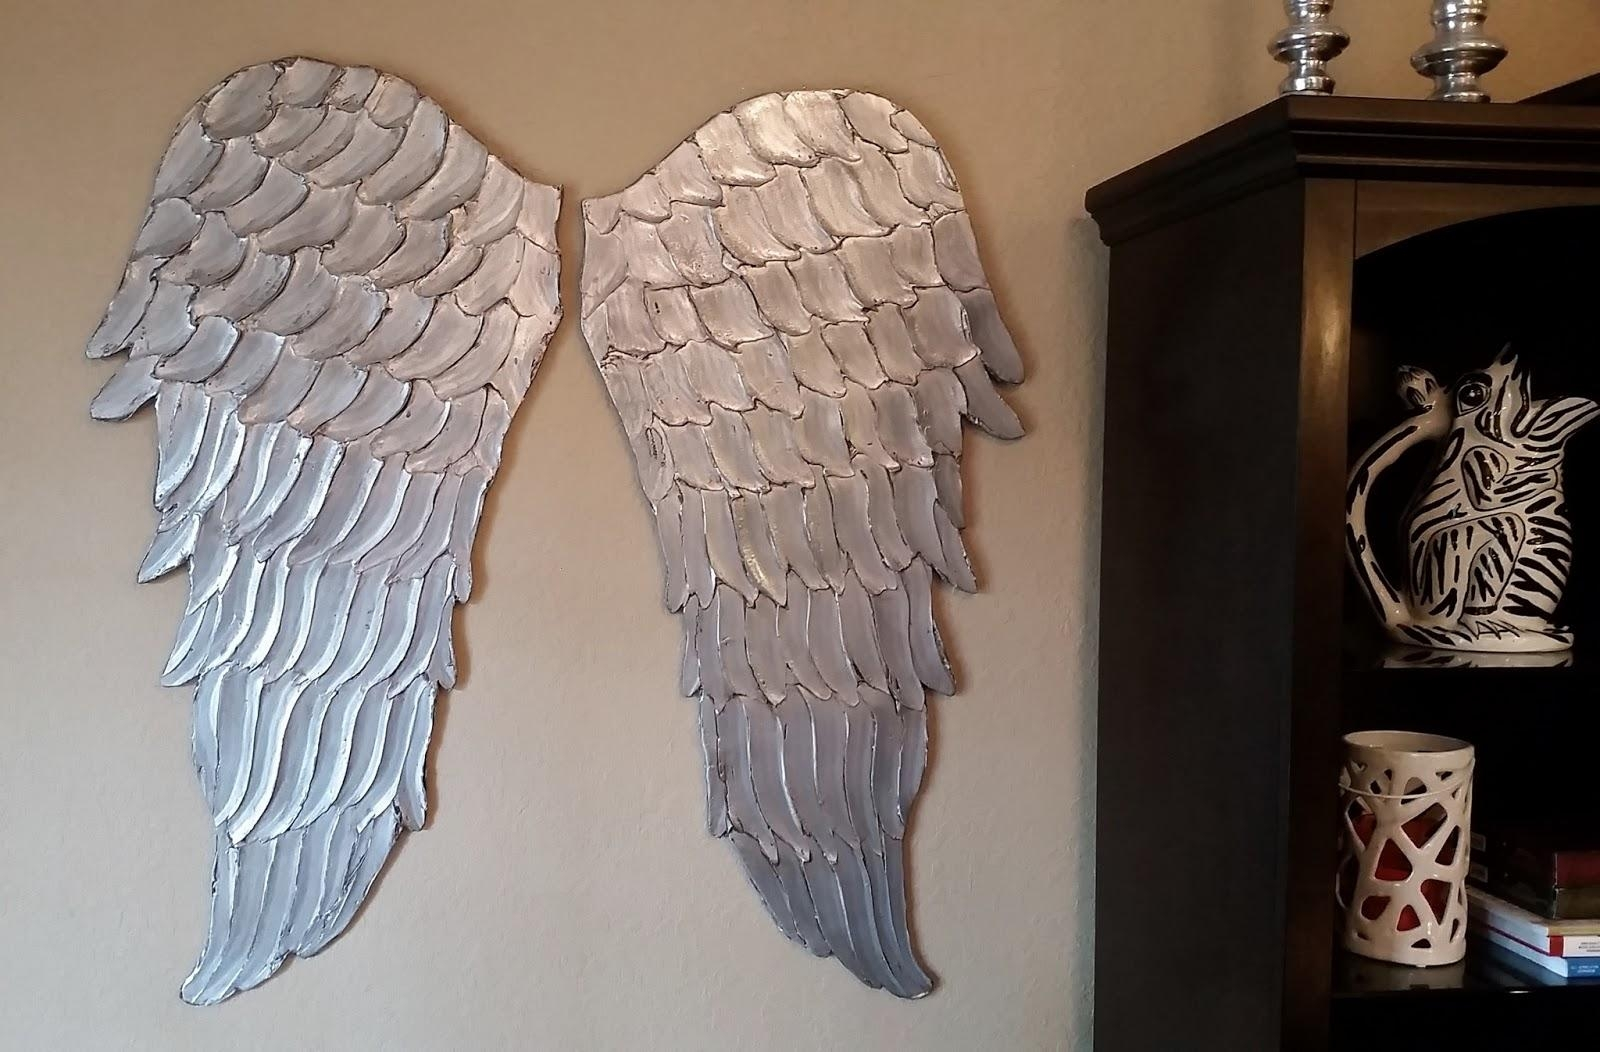 20 collection of angel wings wall art wall art ideas for Angel wings wall decoration uk